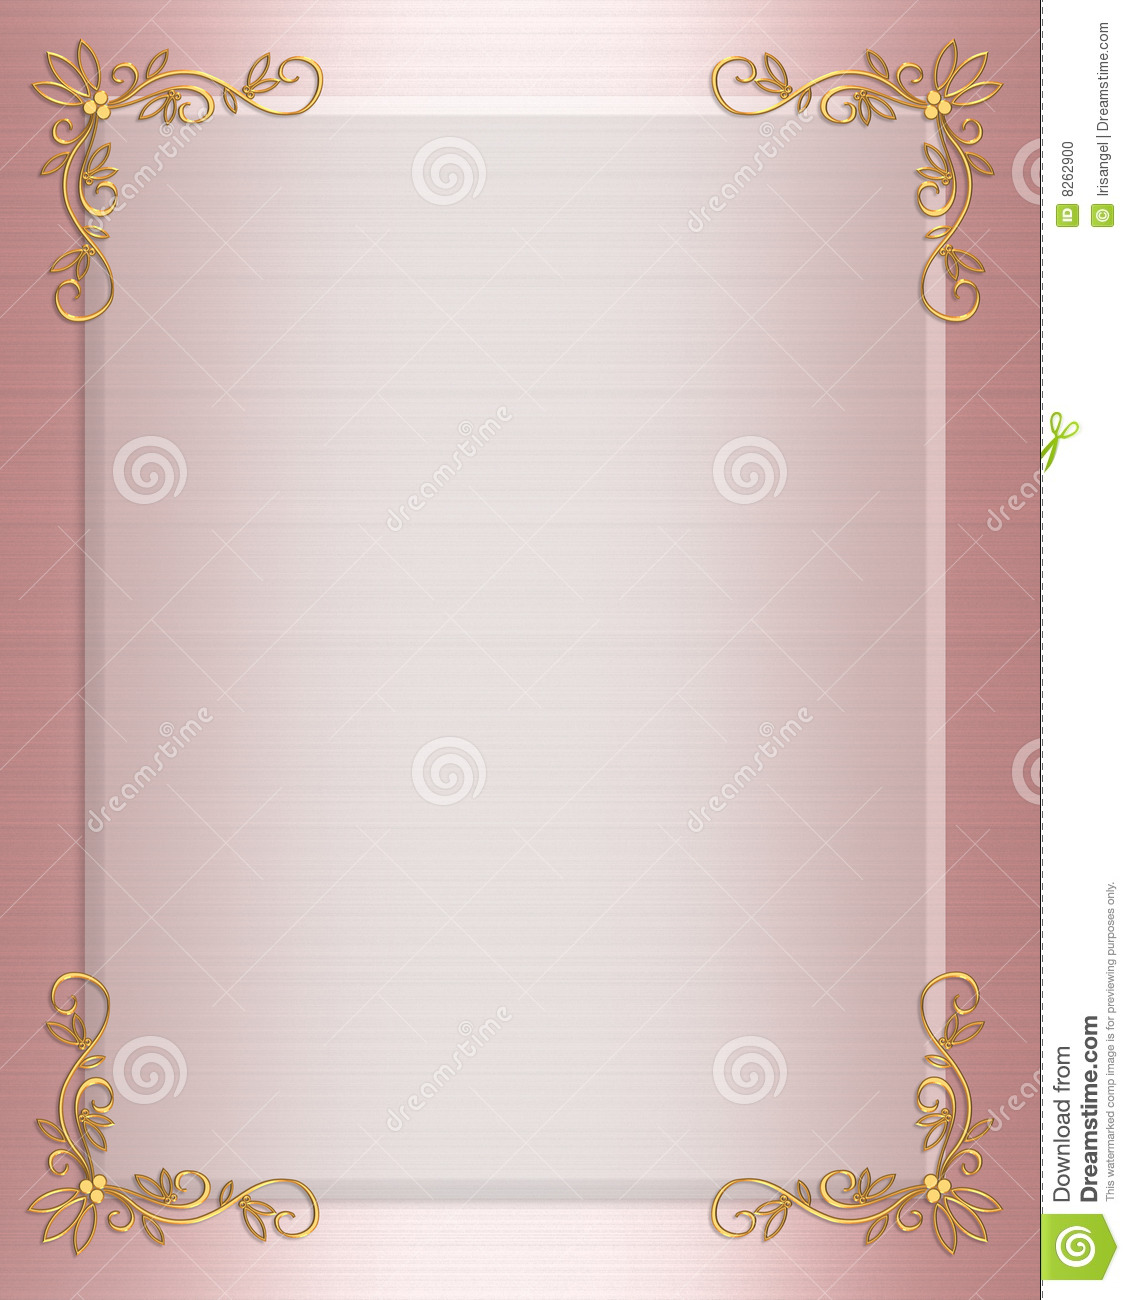 Formal wedding invitation border pink satin stock illustration formal wedding invitation border pink satin stopboris Choice Image